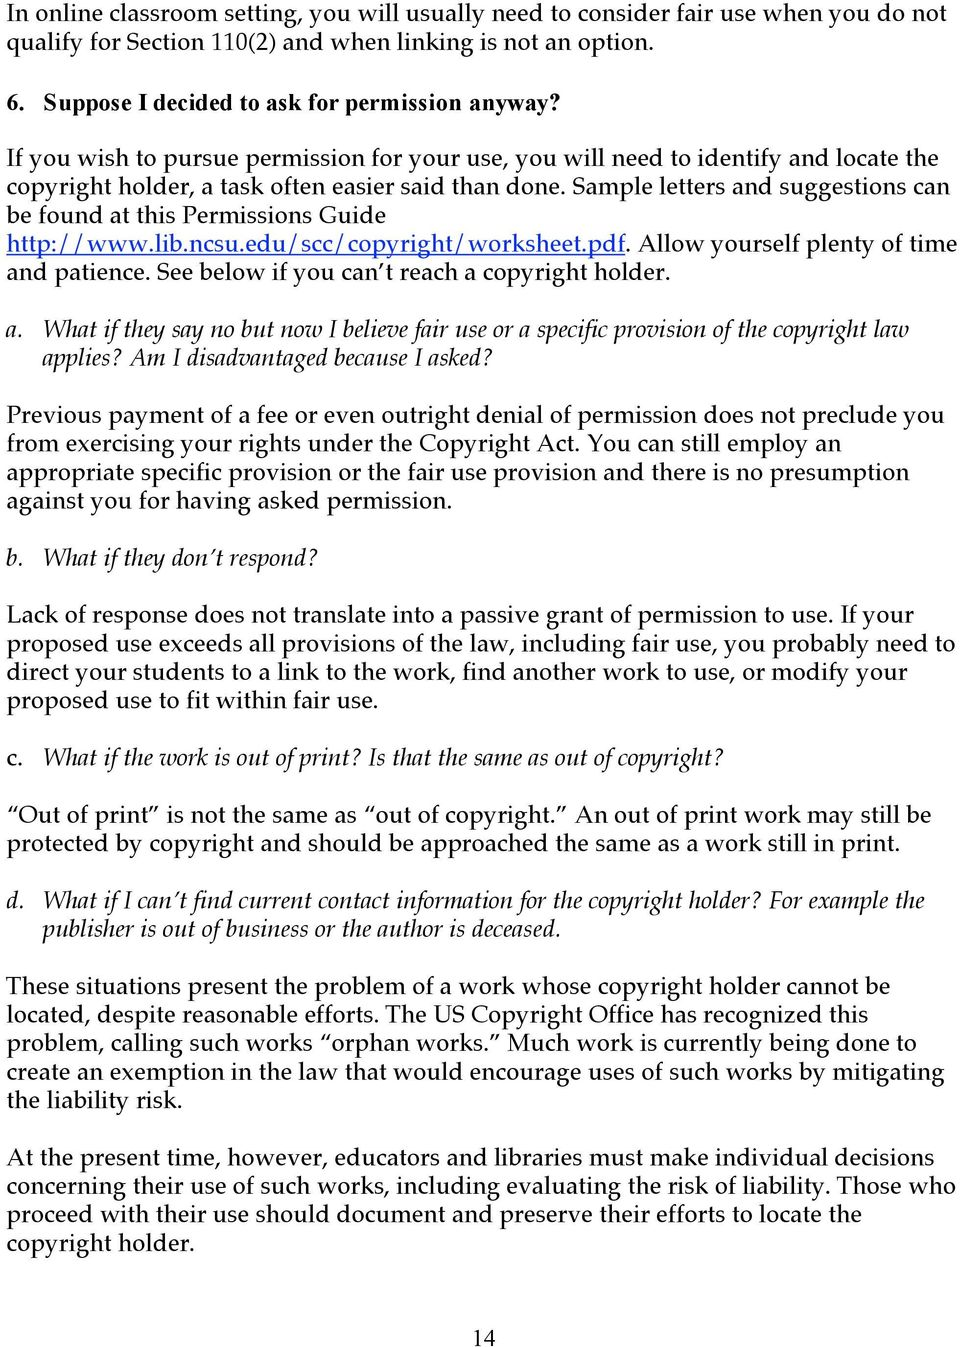 Sample letters and suggestions can be found at this Permissions Guide http://www.lib.ncsu.edu/scc/copyright/worksheet.pdf. Allow yourself plenty of time and patience.